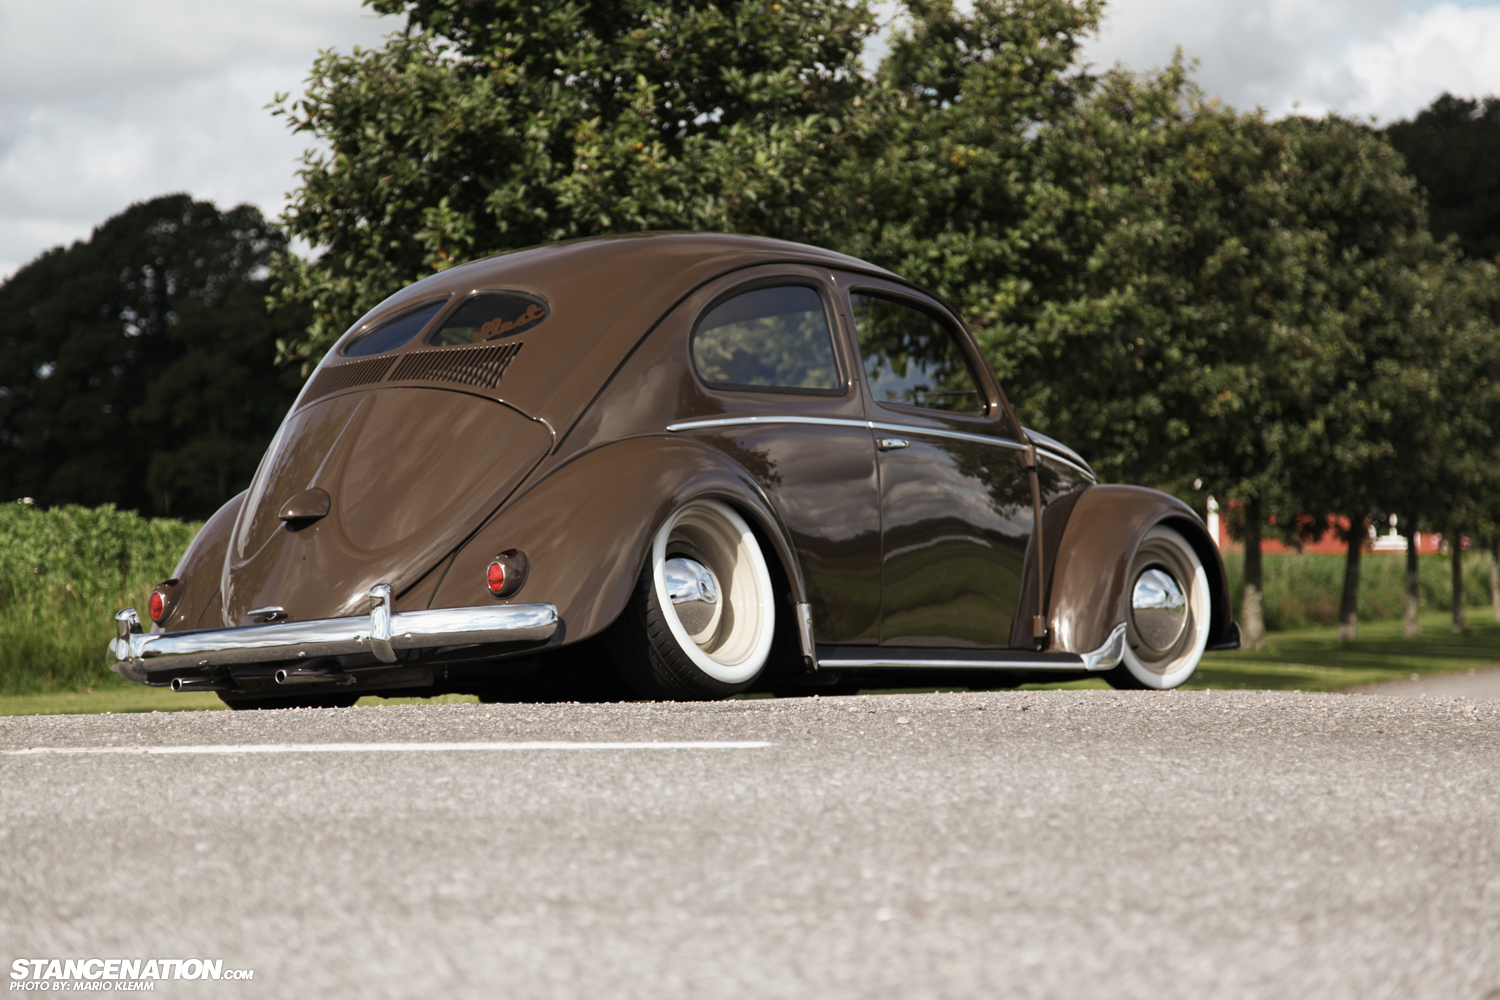 How To Clean Bugs From Old Car